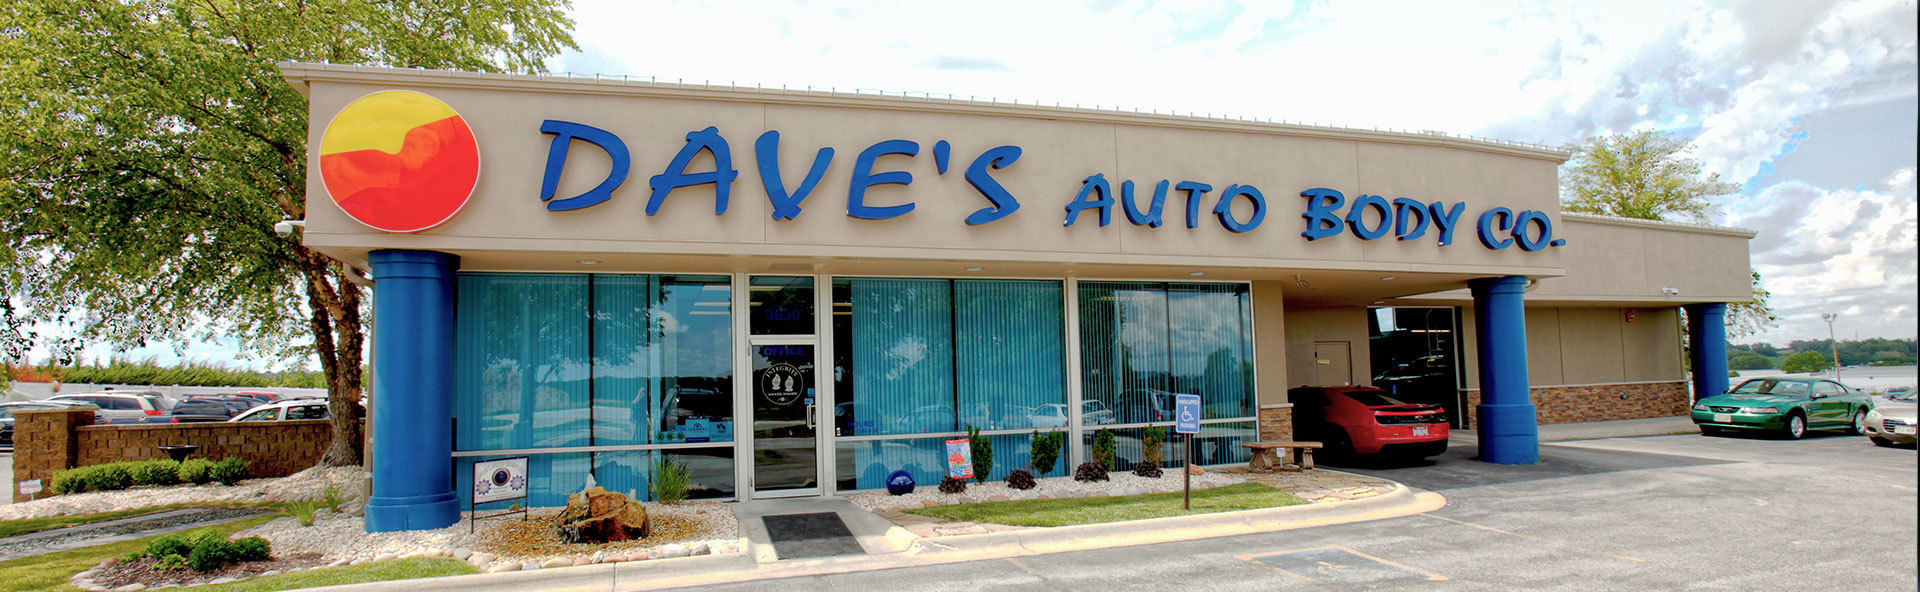 Dave's Auto Body Location